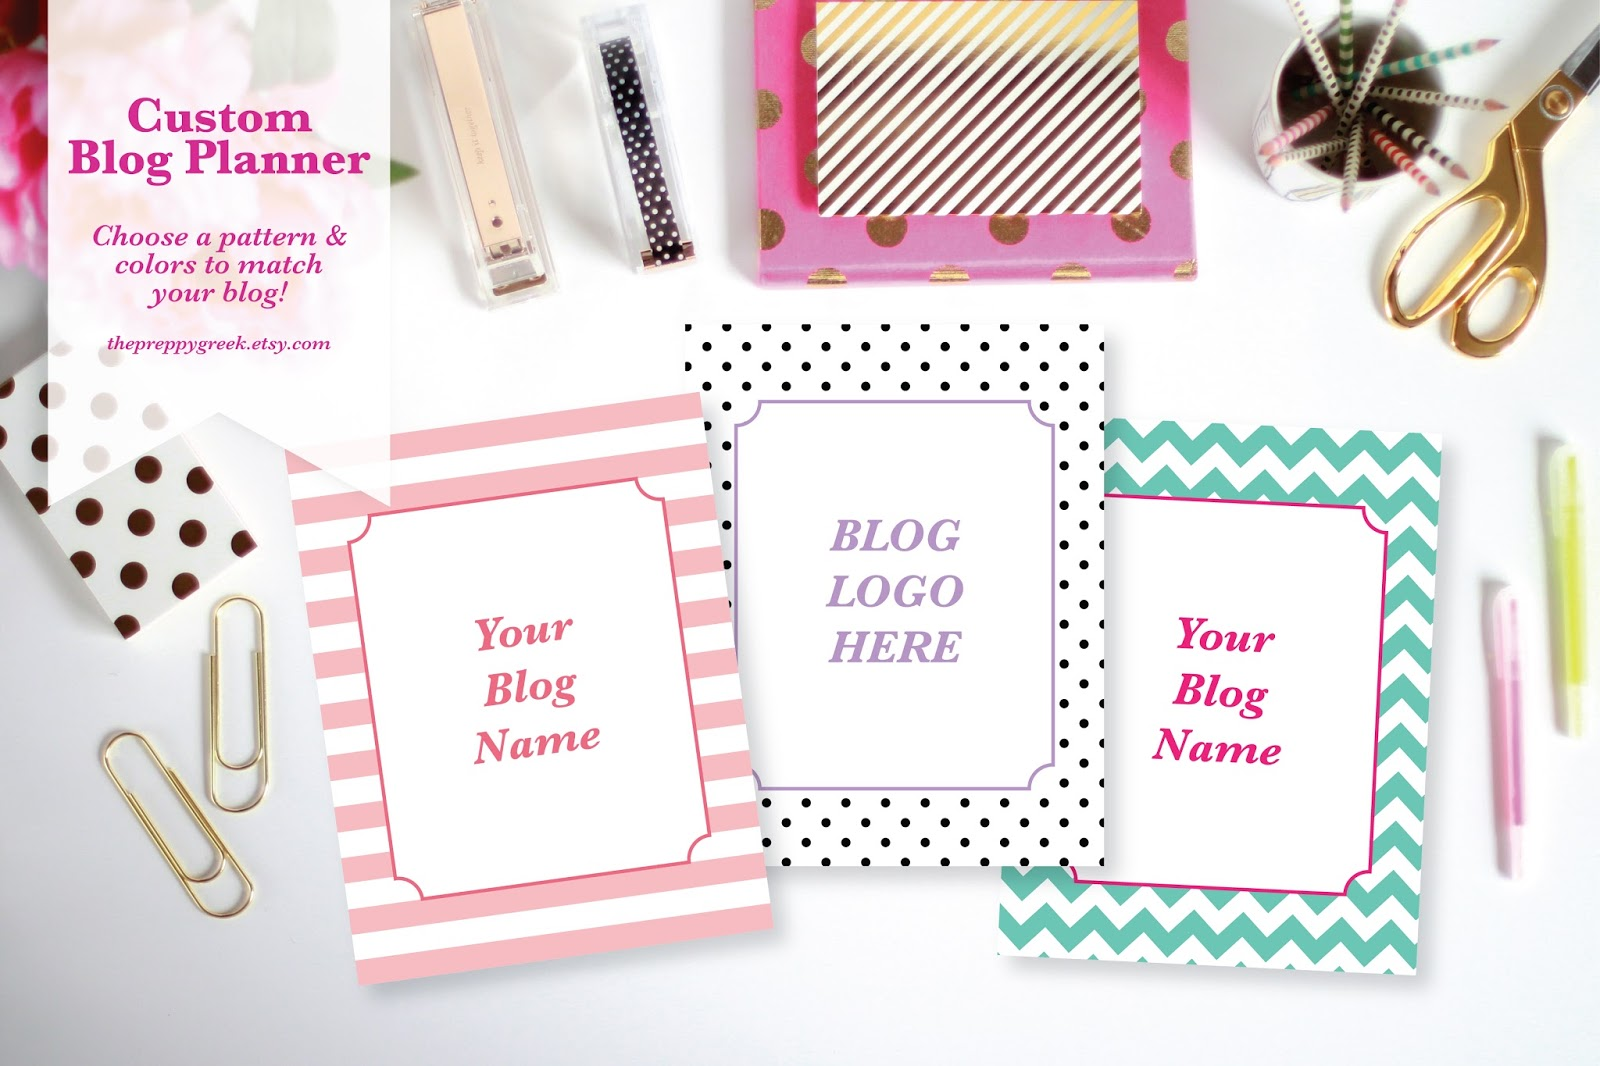 Custom Blog Planner! Choose a pattern and colors to match your blog branding. You can even have your logo added to the front cover!